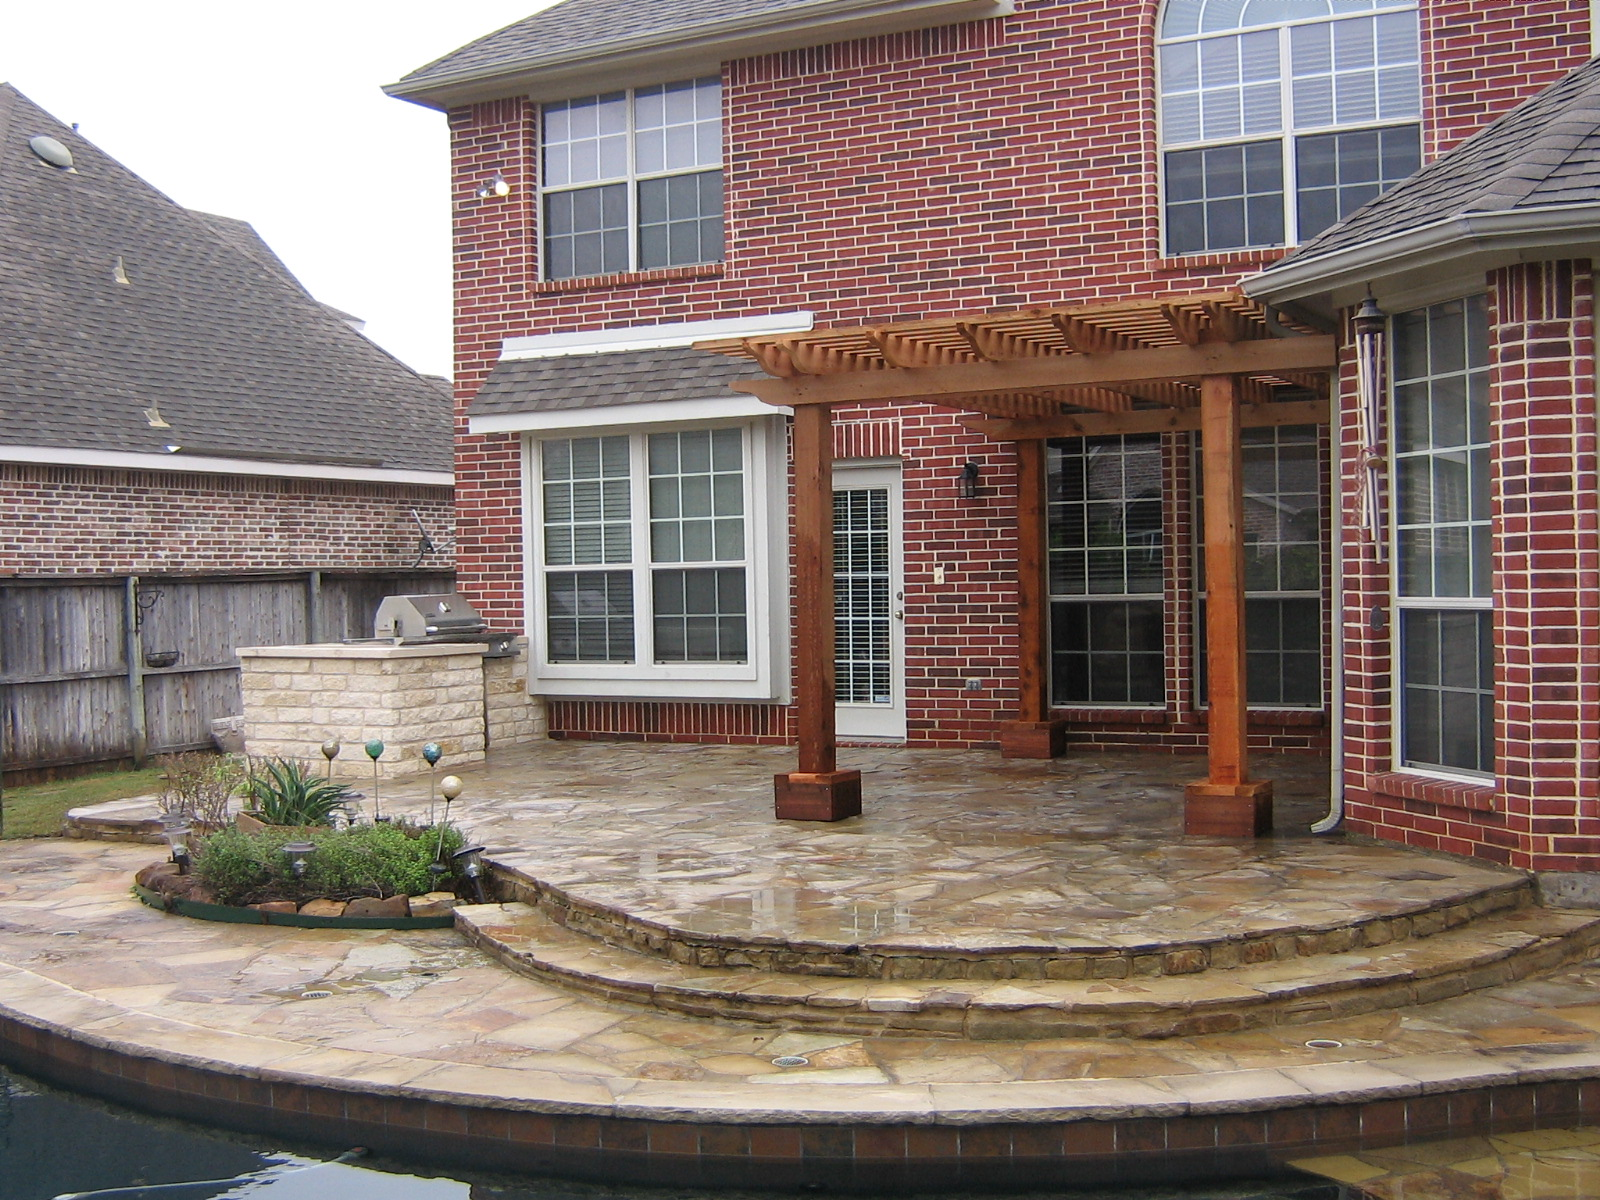 Cedar arbor home and lawn transformers for Redwood patio cover